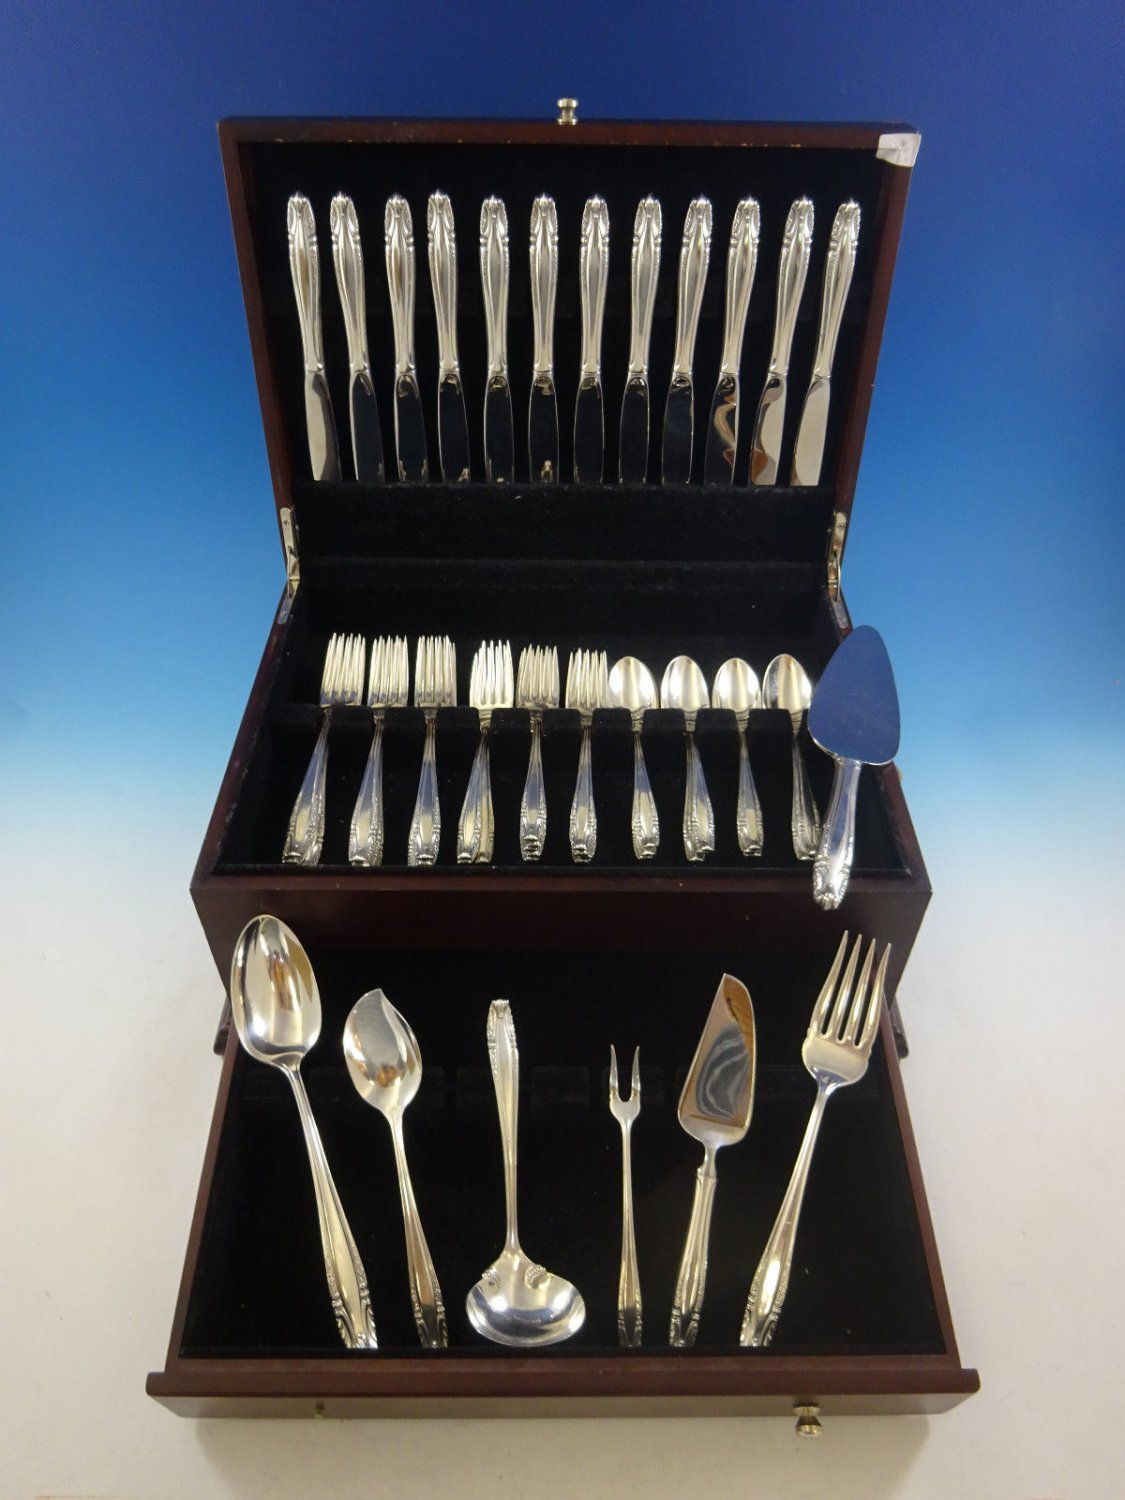 Stradivari by Wallace Sterling Silver Flatware Set For 12 Service 55 Pieces